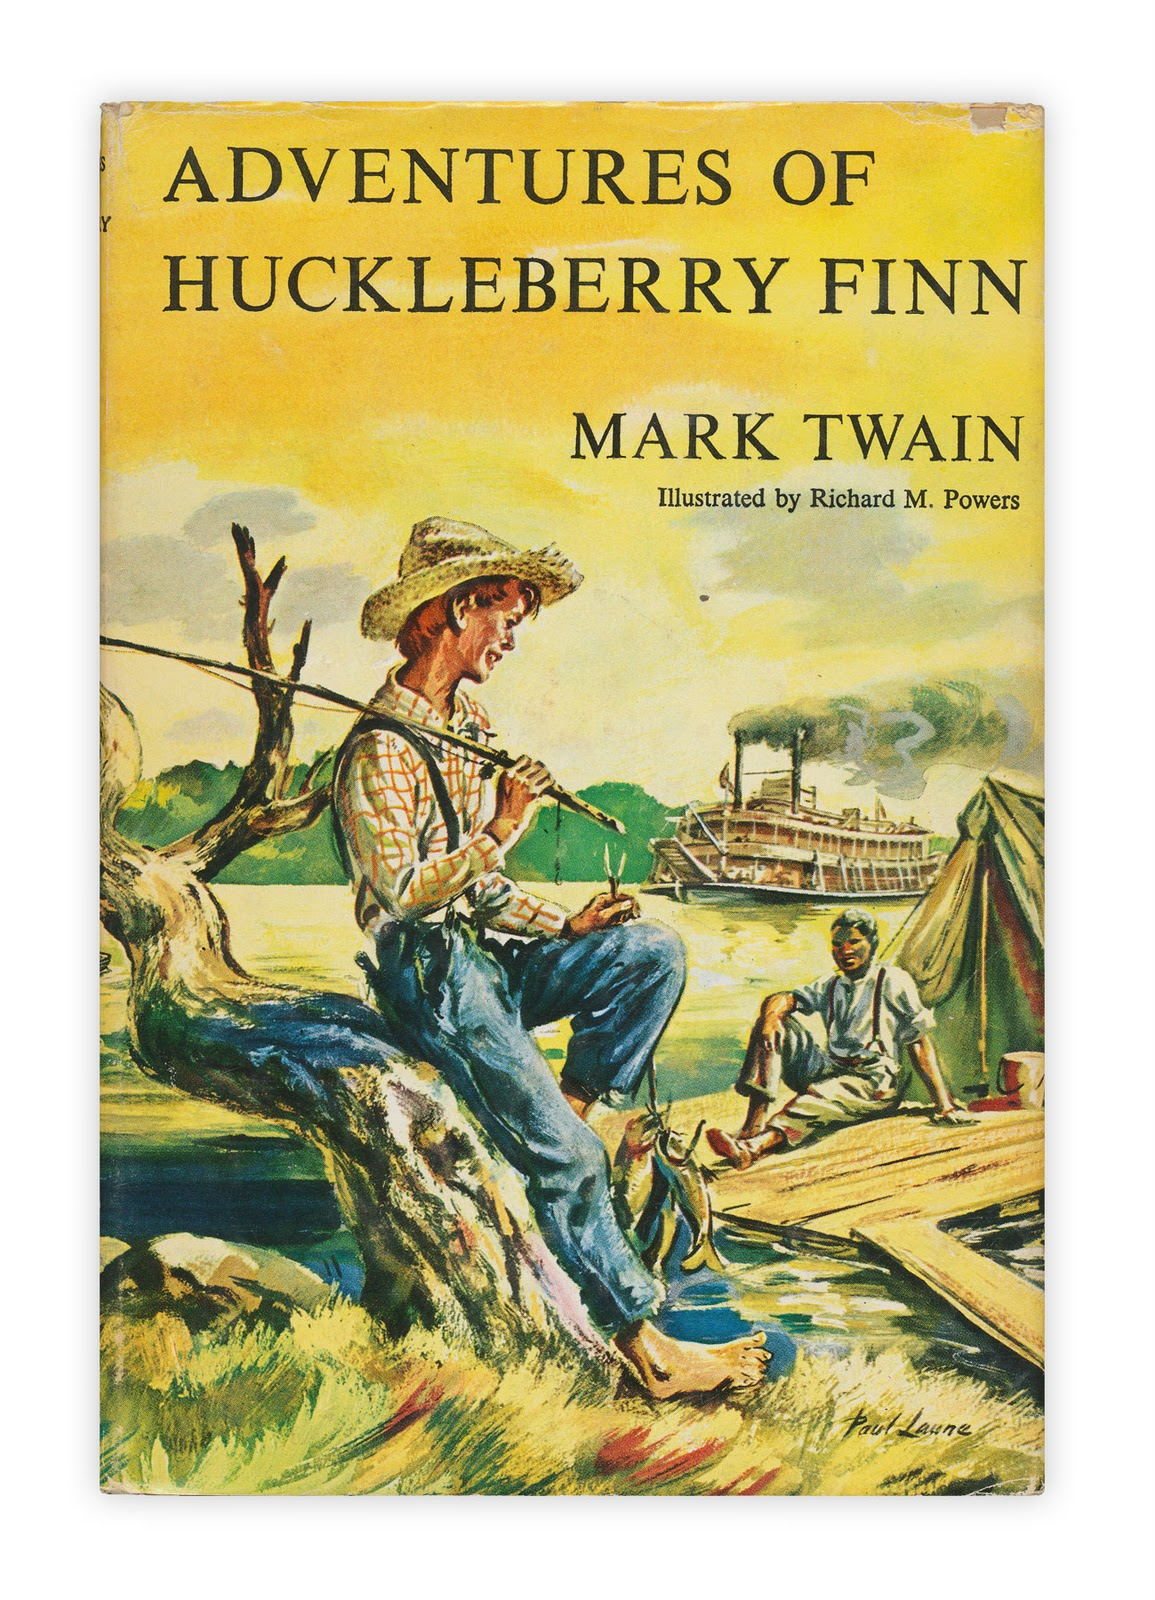 the influences of huckleberry finn in mark twains the adventures of huckleberry finn Adventures of huckleberry finn (or, in more recent editions, the adventures of huckleberry finn) is a novel by mark twain, first published in the united kingdom in december 1884 and in the united states in february 1885.